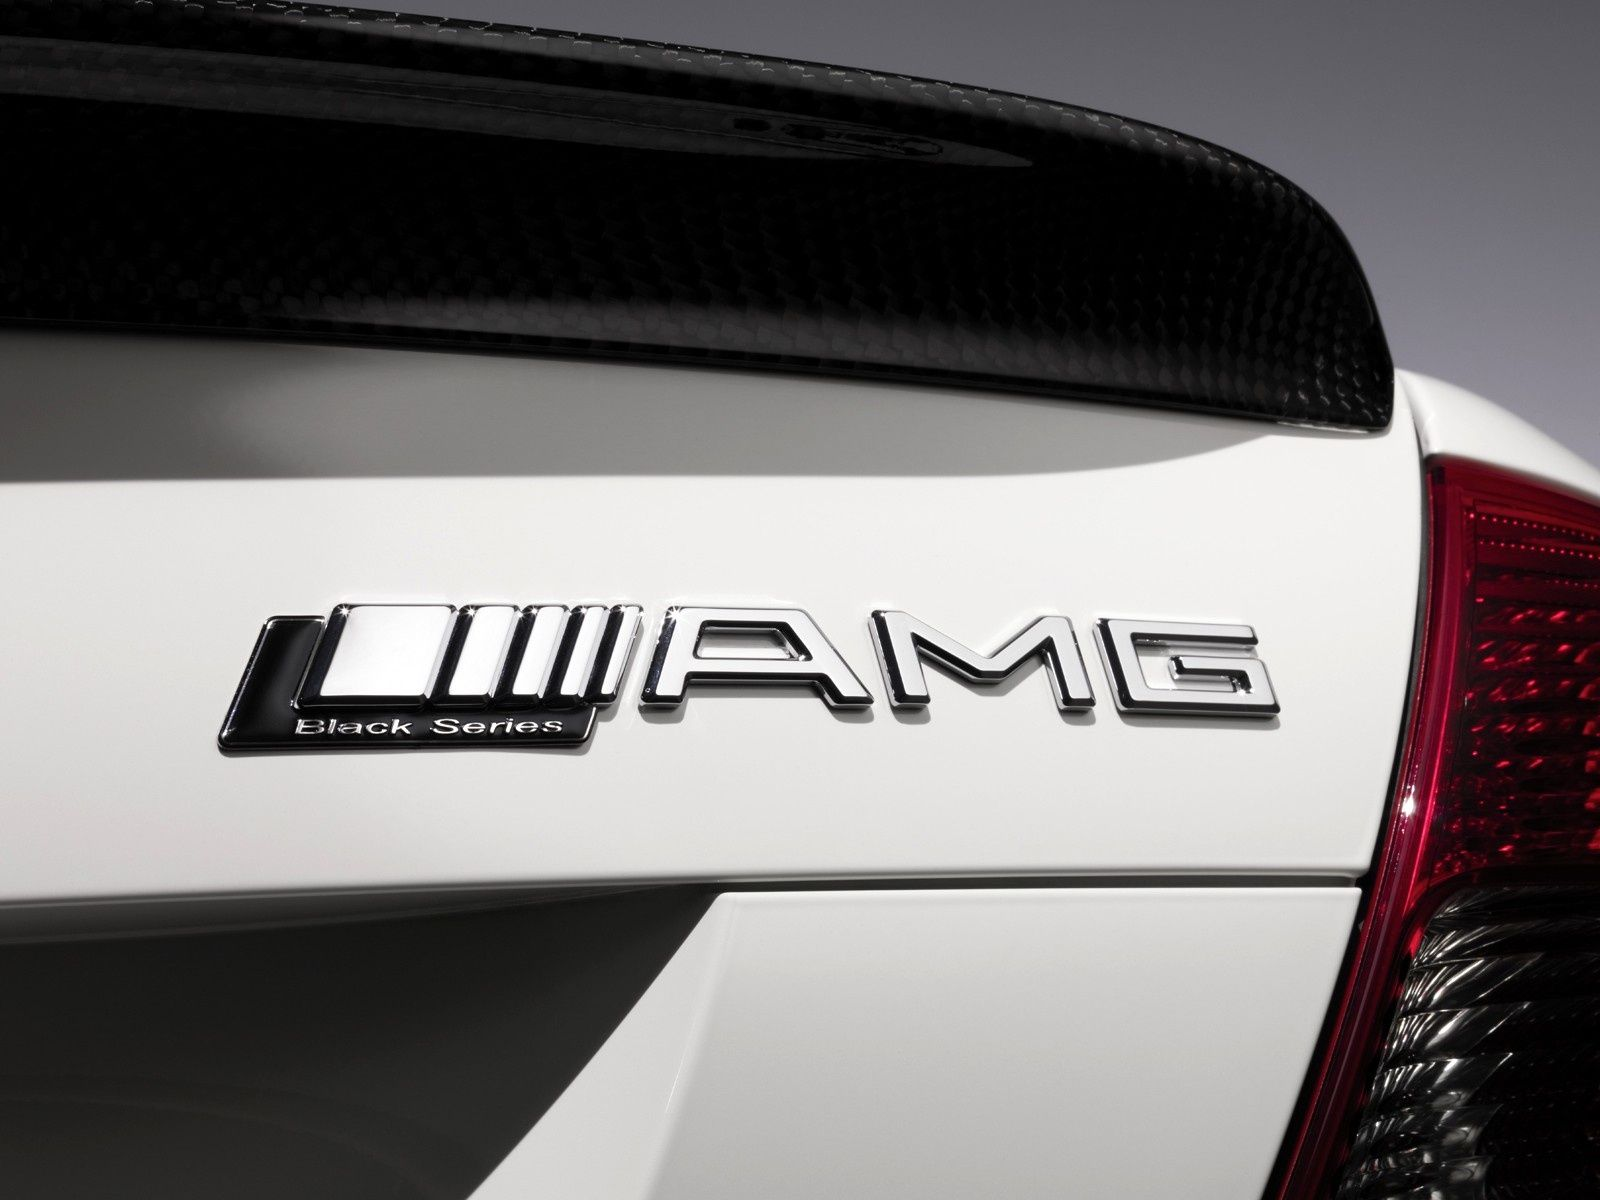 Mercedes amg logo wallpapers from yours cars hd mercedes backgrounds for desktop hd backgrounds by woodrow fletcher voltagebd Image collections